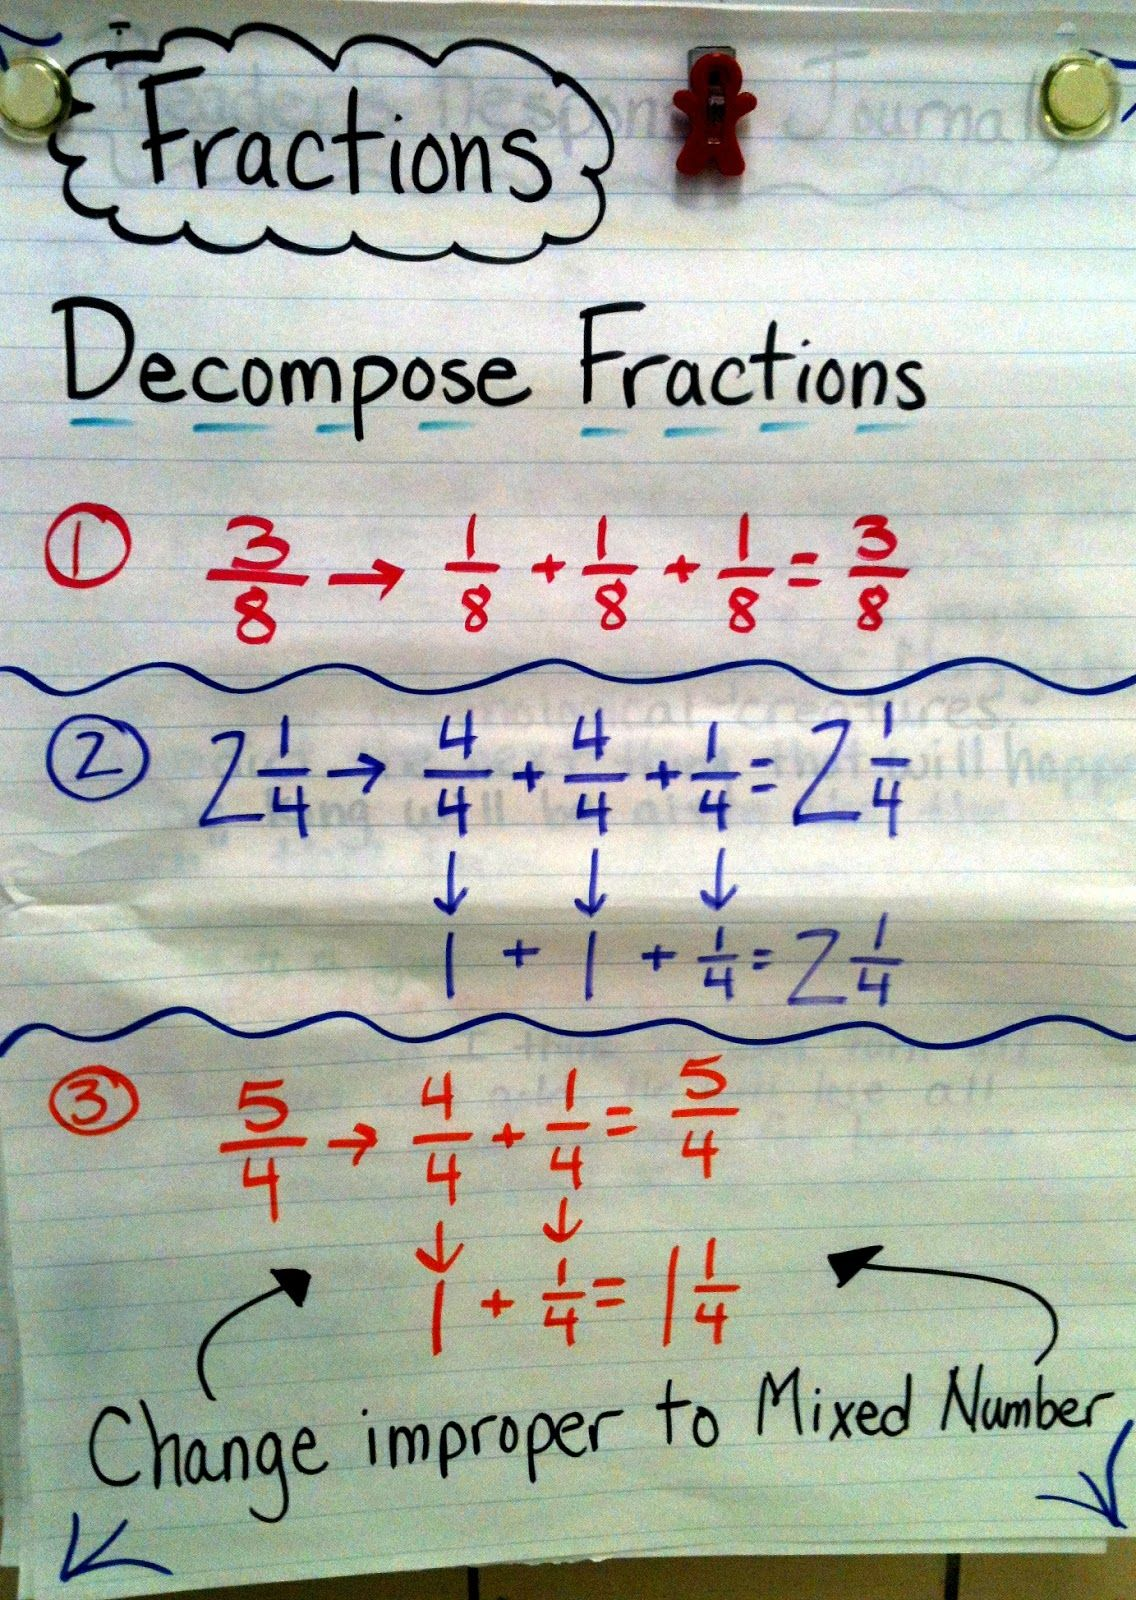 Decompose Fractions Anchor Chart A Good Way To Look At